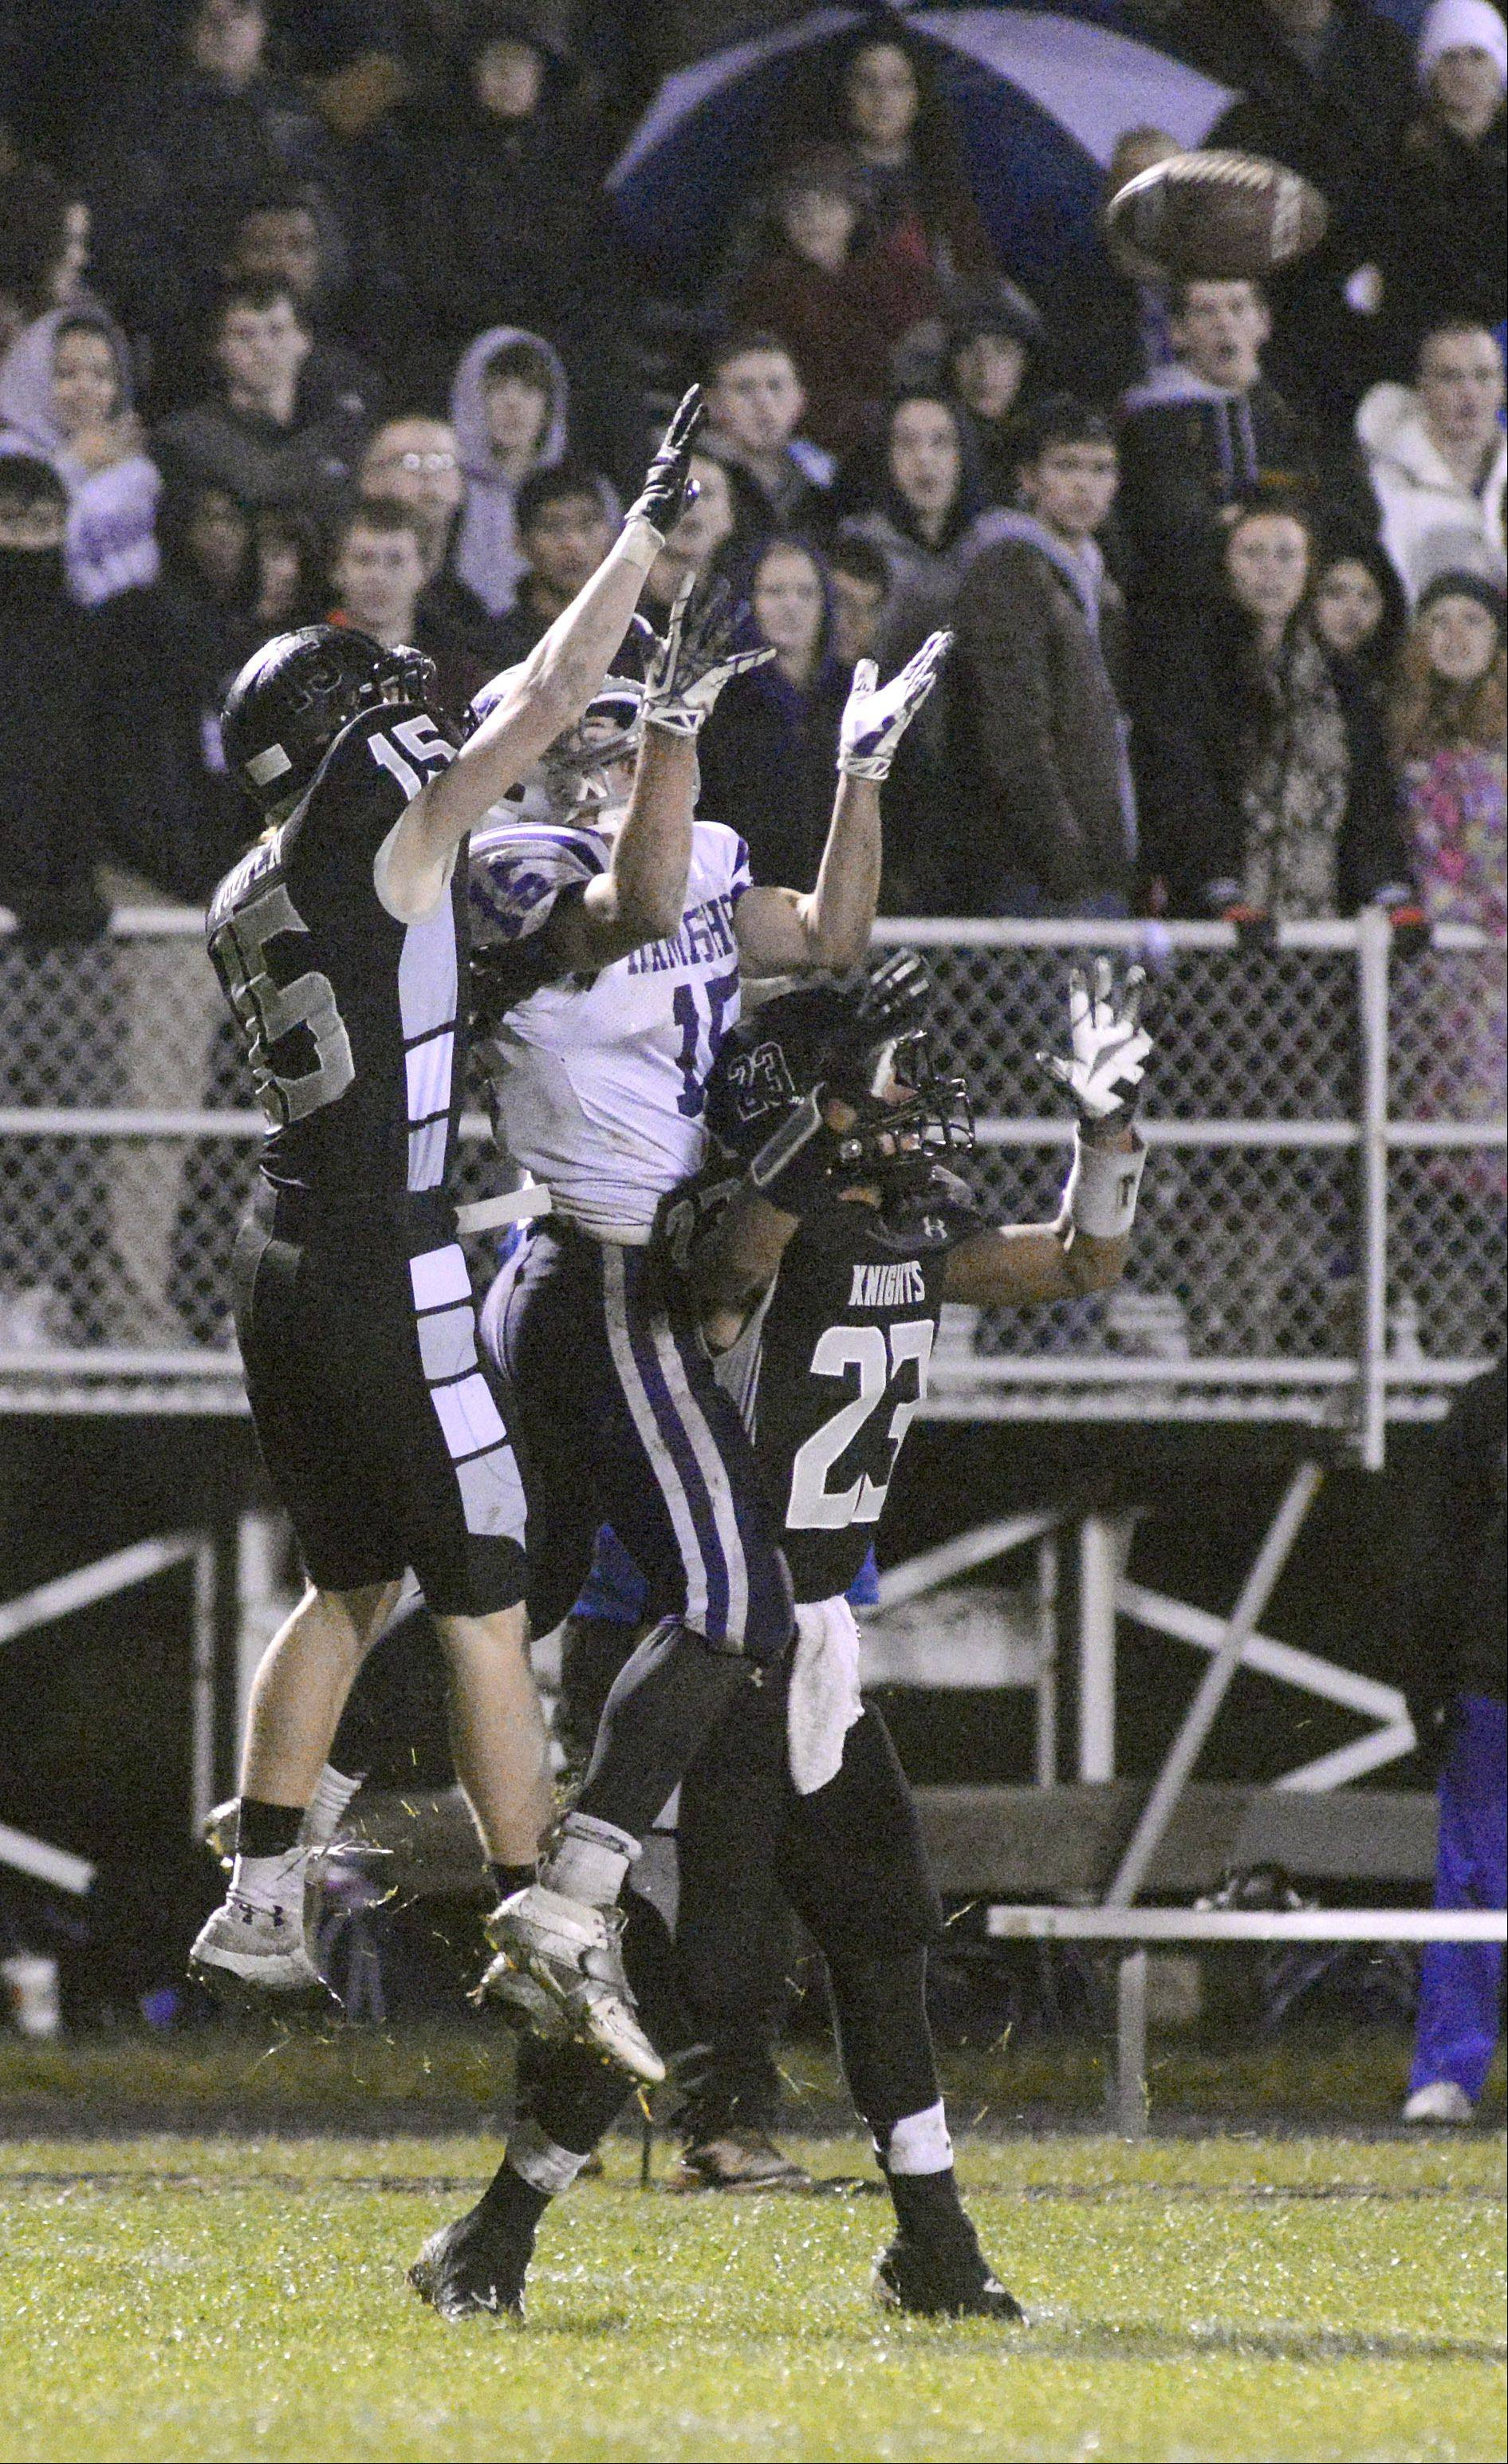 Kaneland's Alex Aurelio (15) and Isaac Swithers (23) leap in tandem for the ball with Hampshire's Tim Jansen in the second quarter, the ball slipping through all their fingers, on Friday, November 1.